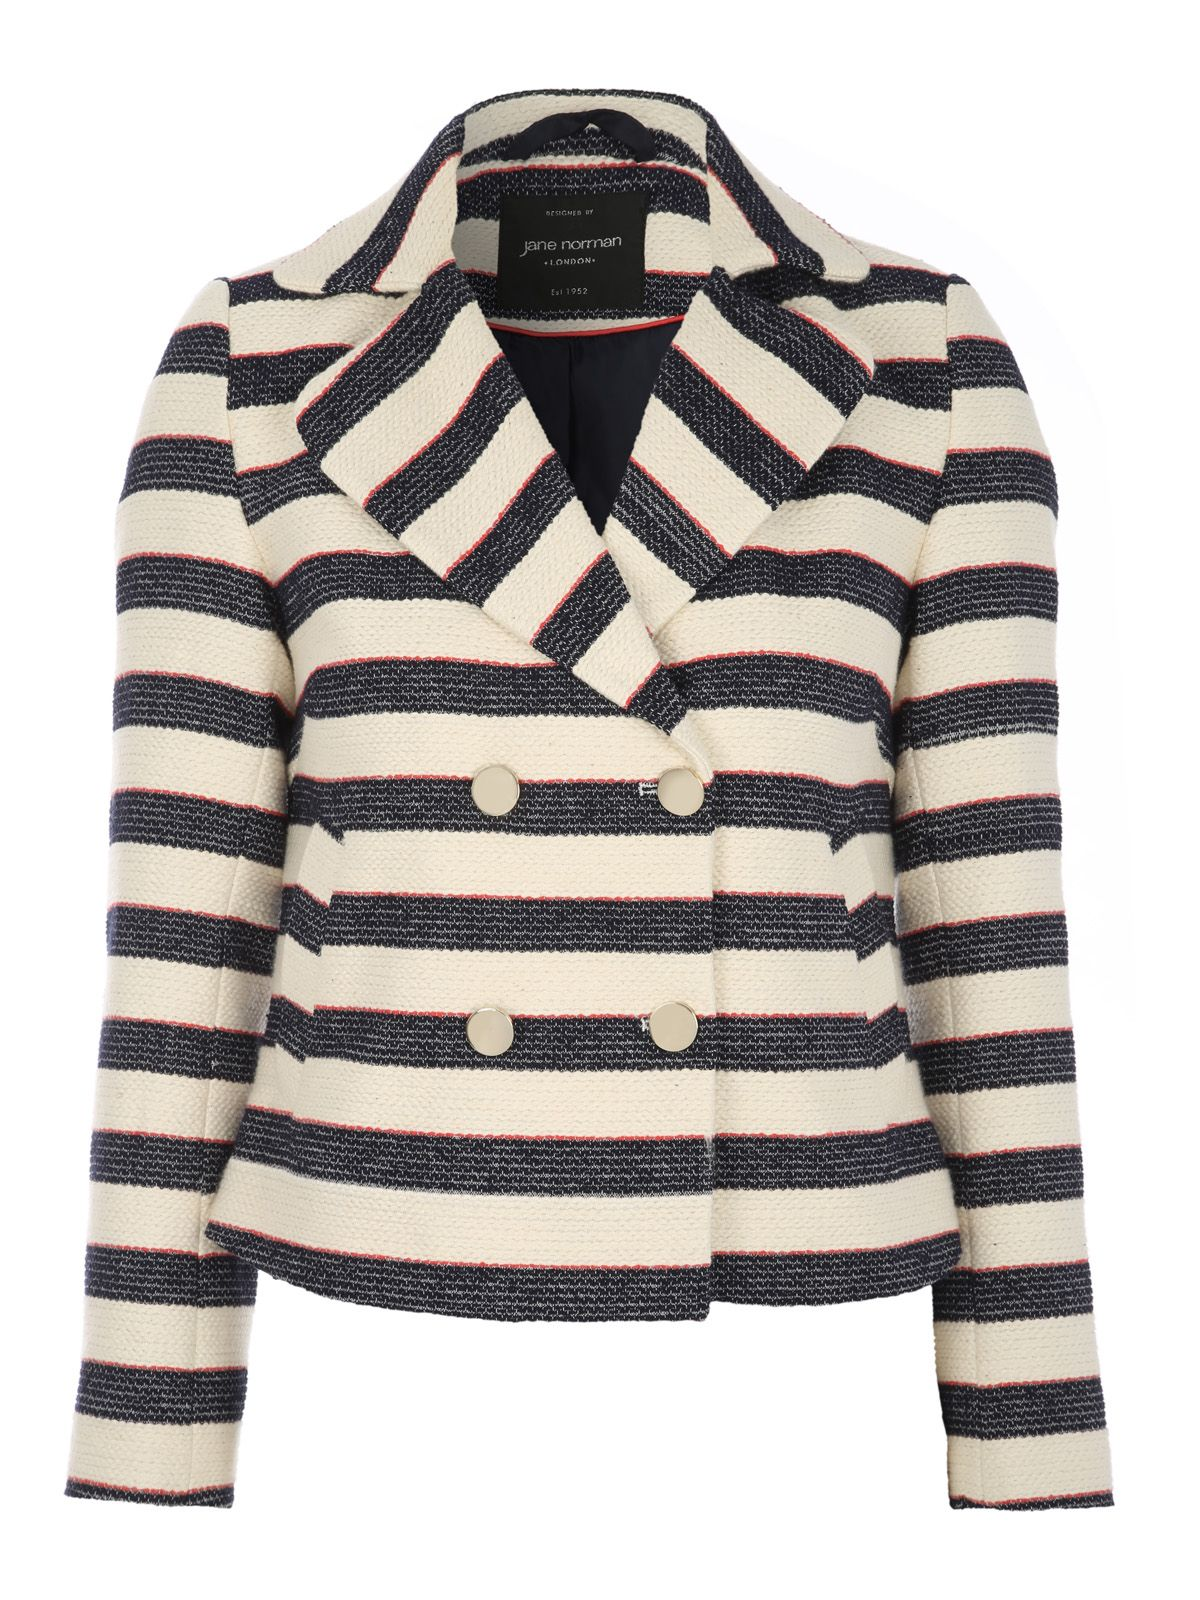 Jane Norman Jane Norman Striped Long Sleeve Textured Jacket, Multi-Coloured